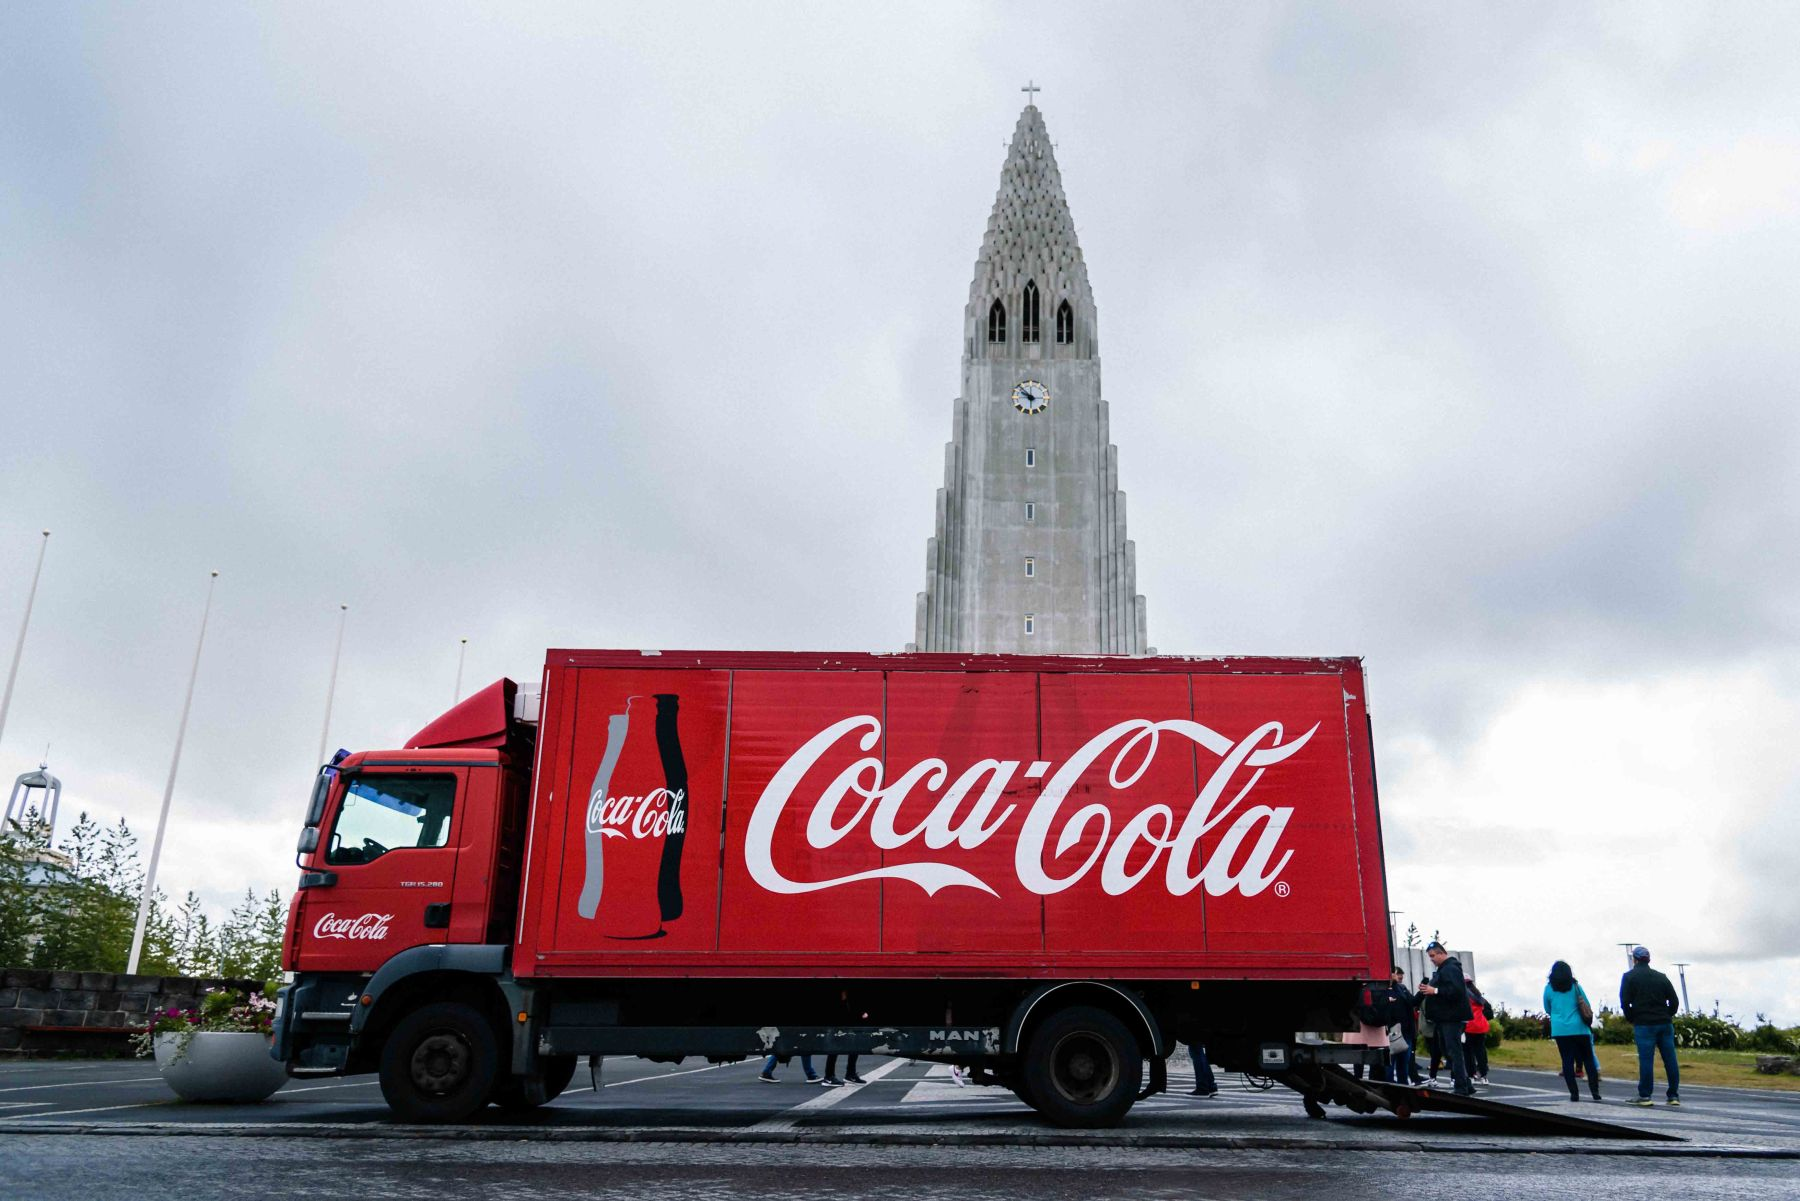 neilson bay area travel photography iceland church coca cola